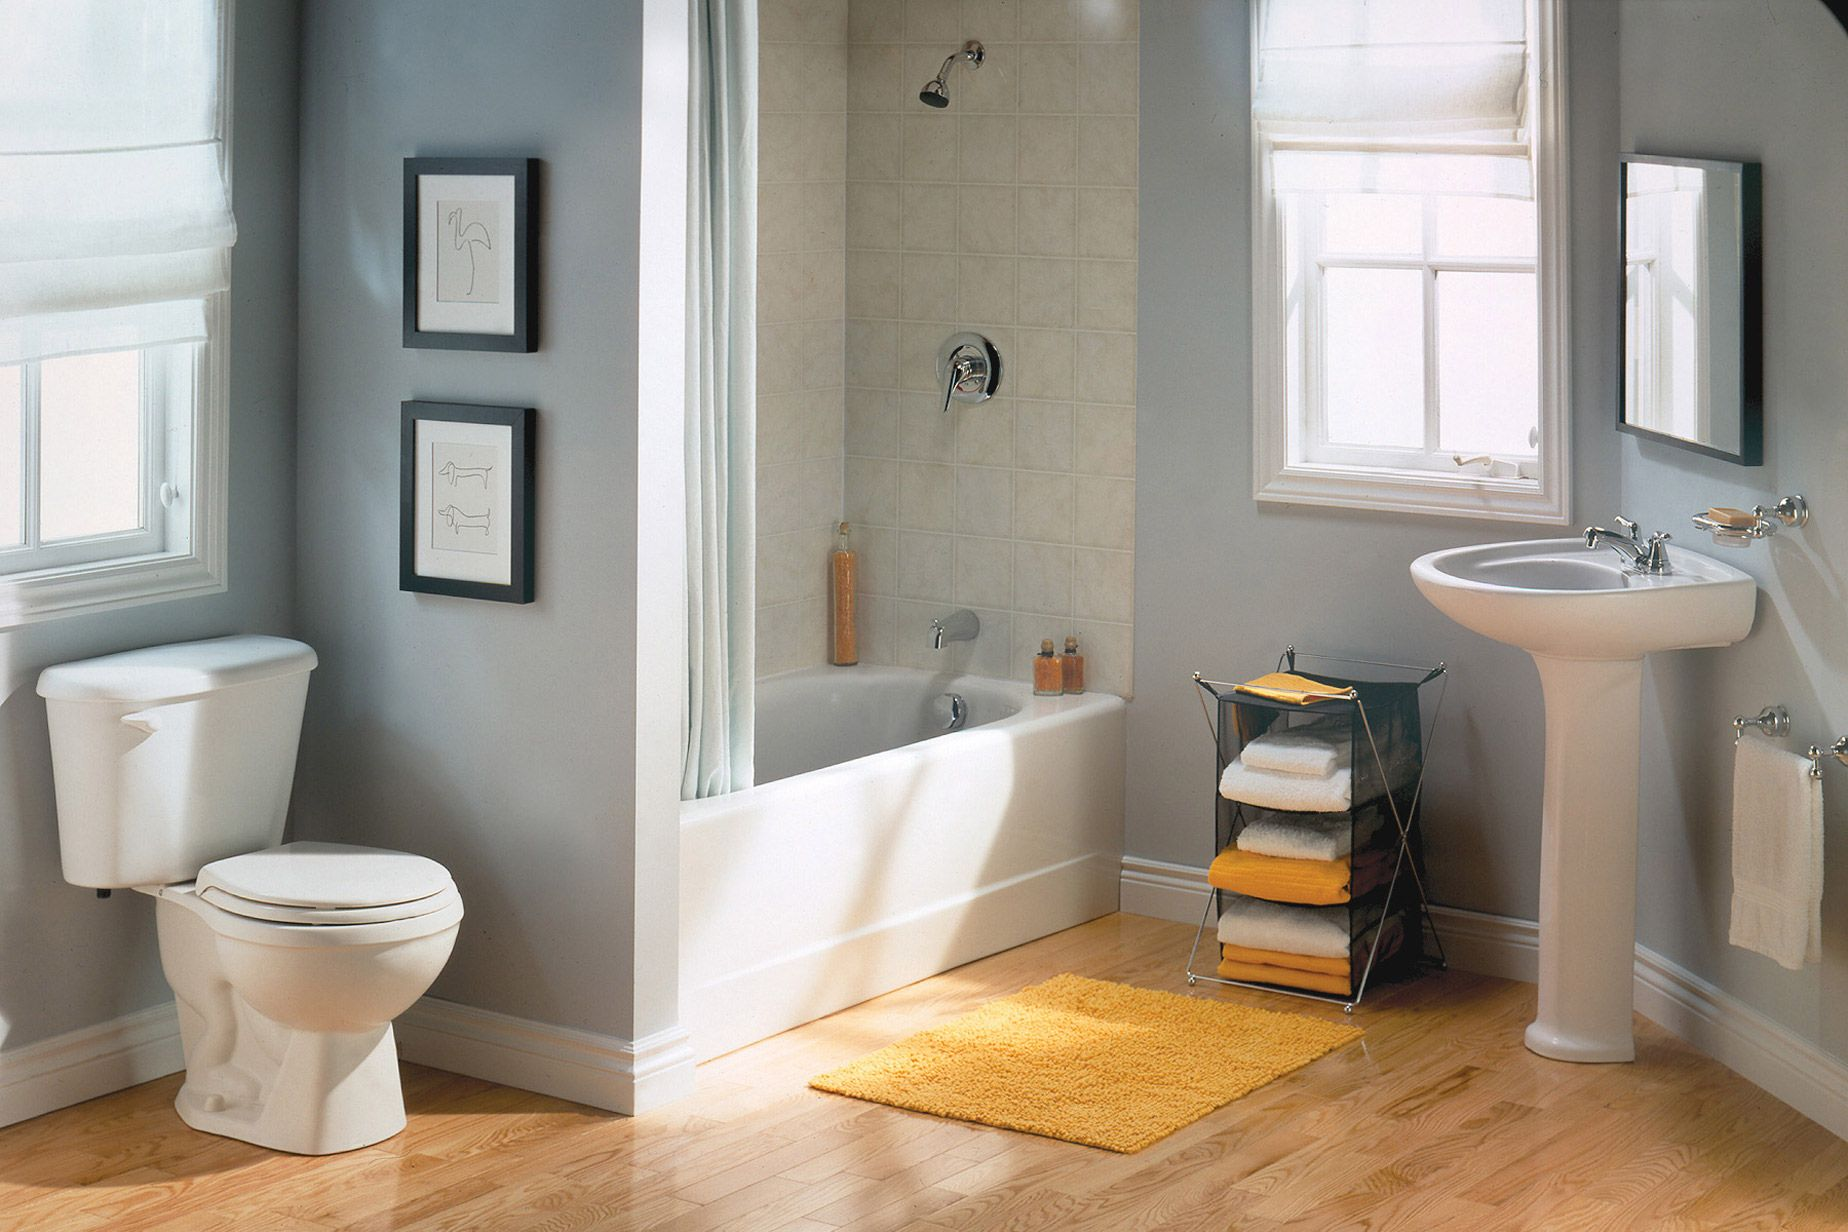 Stylish Bathroom With American Standard S Two Piece Toilet